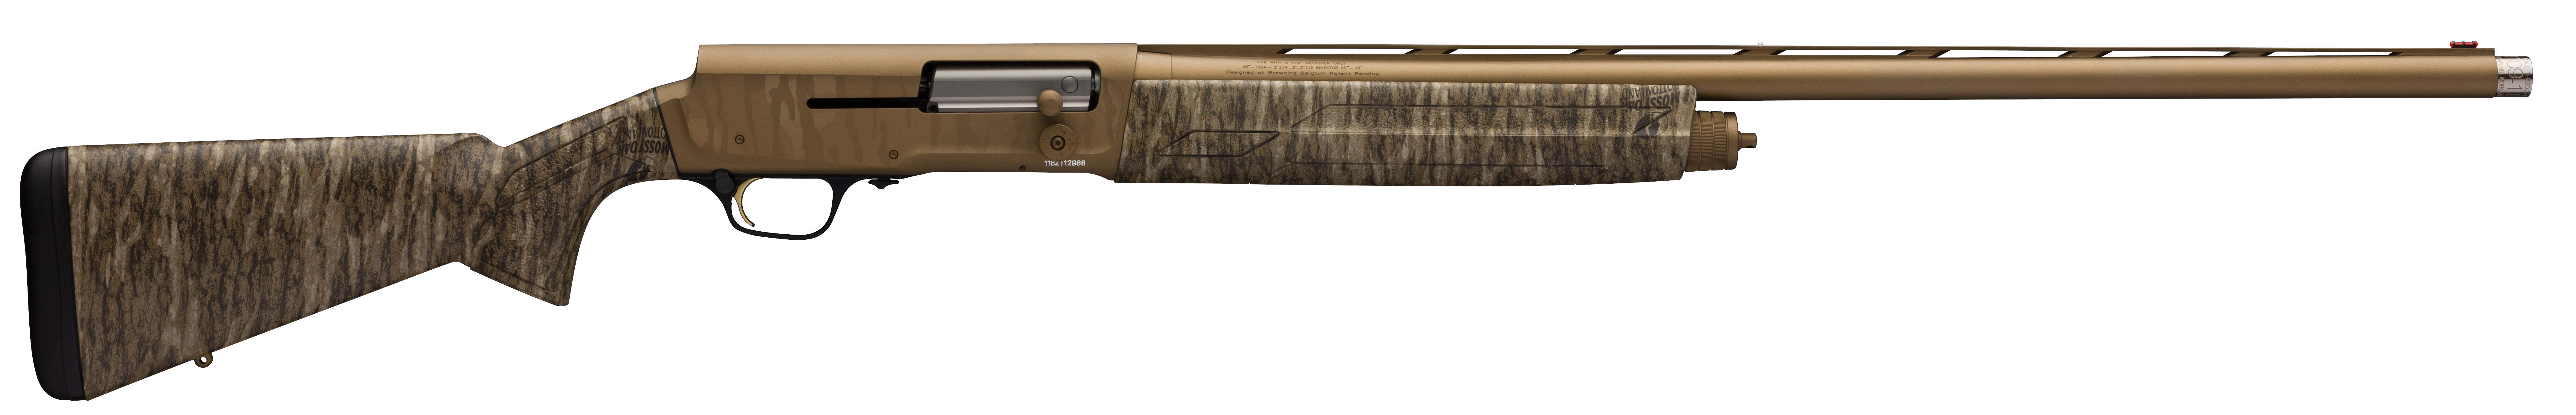 Browning A5 Wicked Wing Semi-Auto Shotgun 3.5'' 12 Gauge 26'' Burnt Bronze Cerakote - Synthetic - Mossy Oak Bottomland